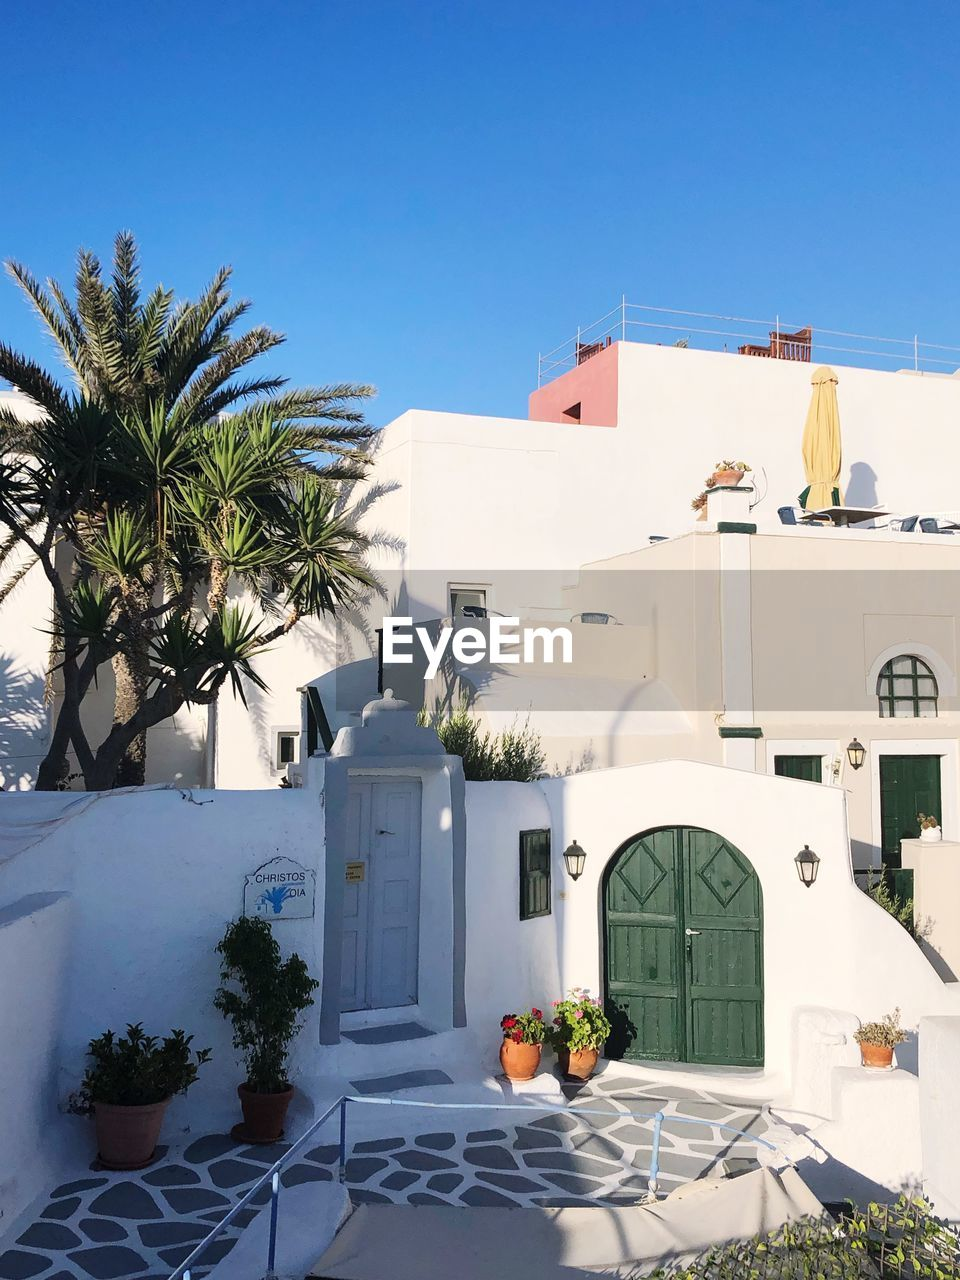 architecture, built structure, building exterior, building, plant, nature, tree, palm tree, tropical climate, sky, sunlight, potted plant, day, clear sky, no people, outdoors, growth, white color, table, house, swimming pool, flower pot